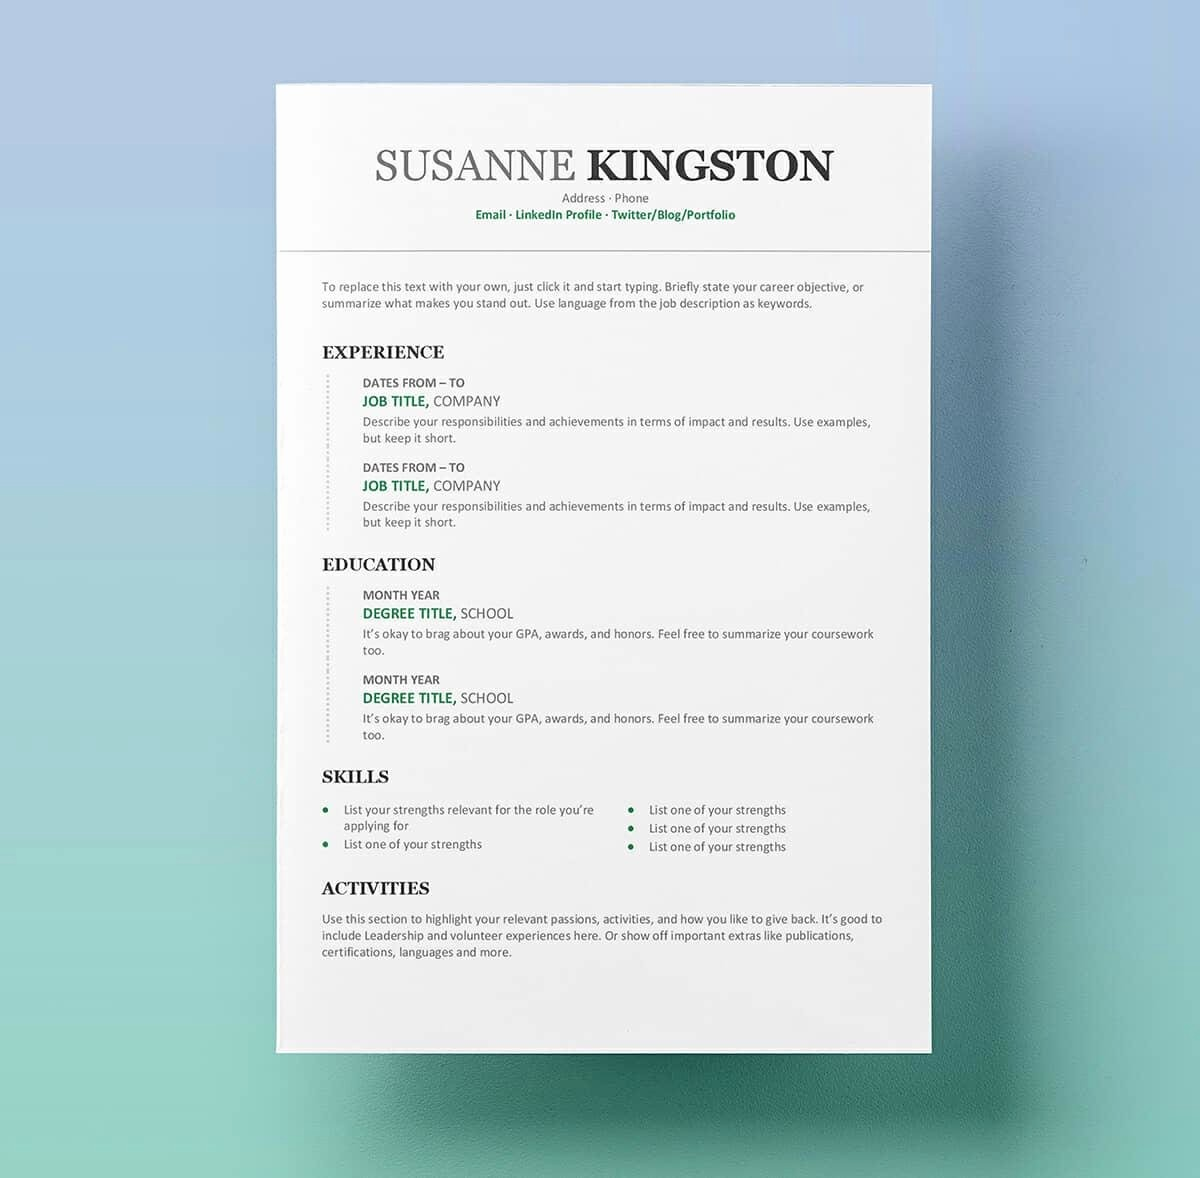 Resume format In Microsoft Word Fresh Resume Templates for Word Free 15 Examples for Download